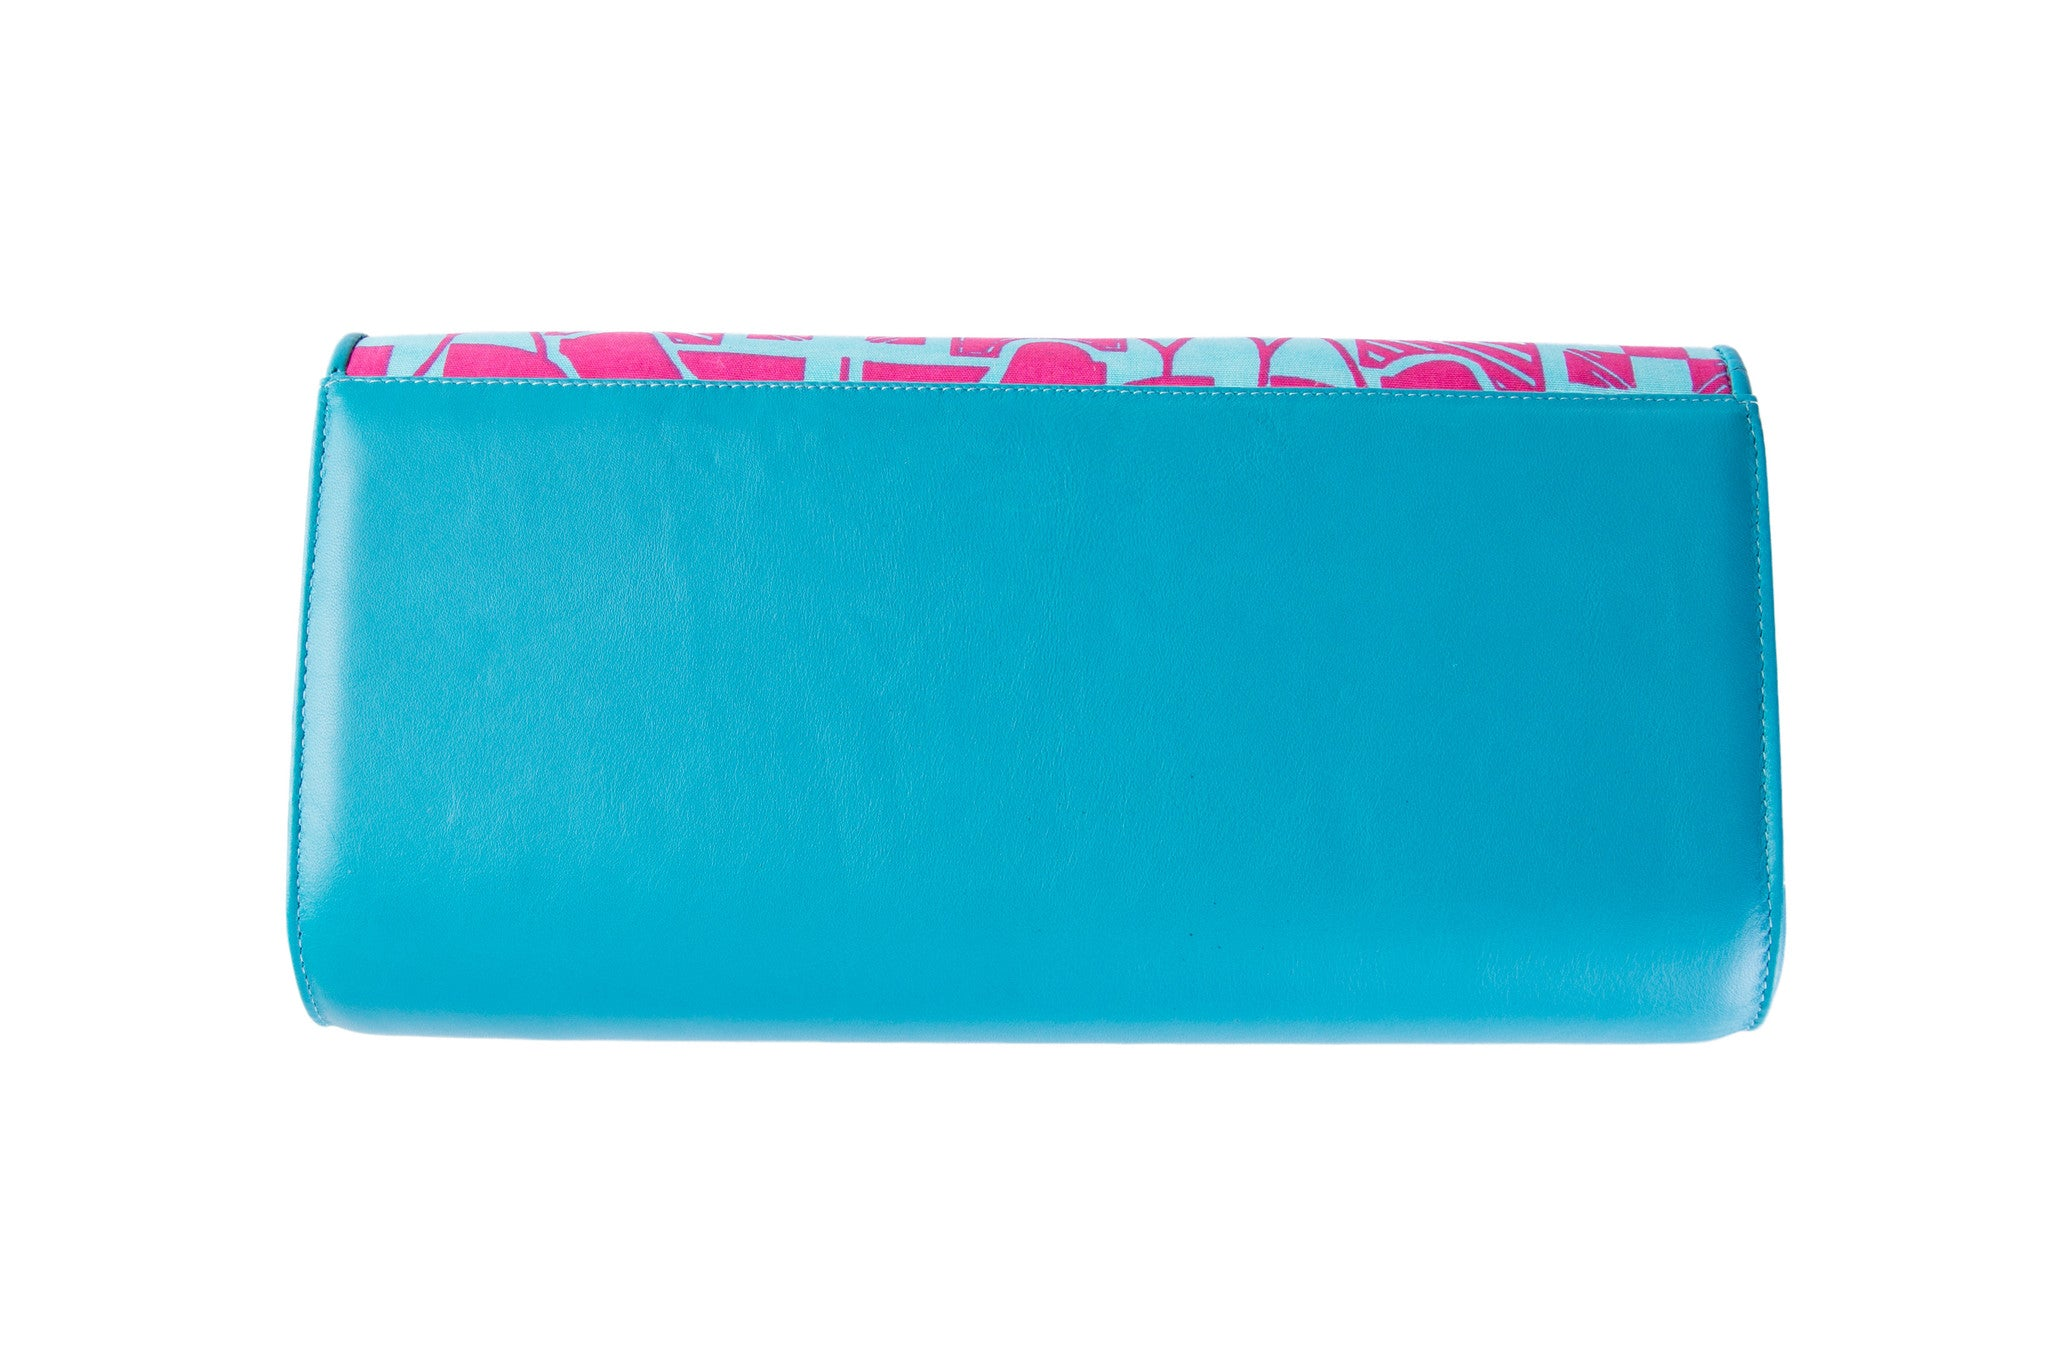 Fuschia dreams leather clutch